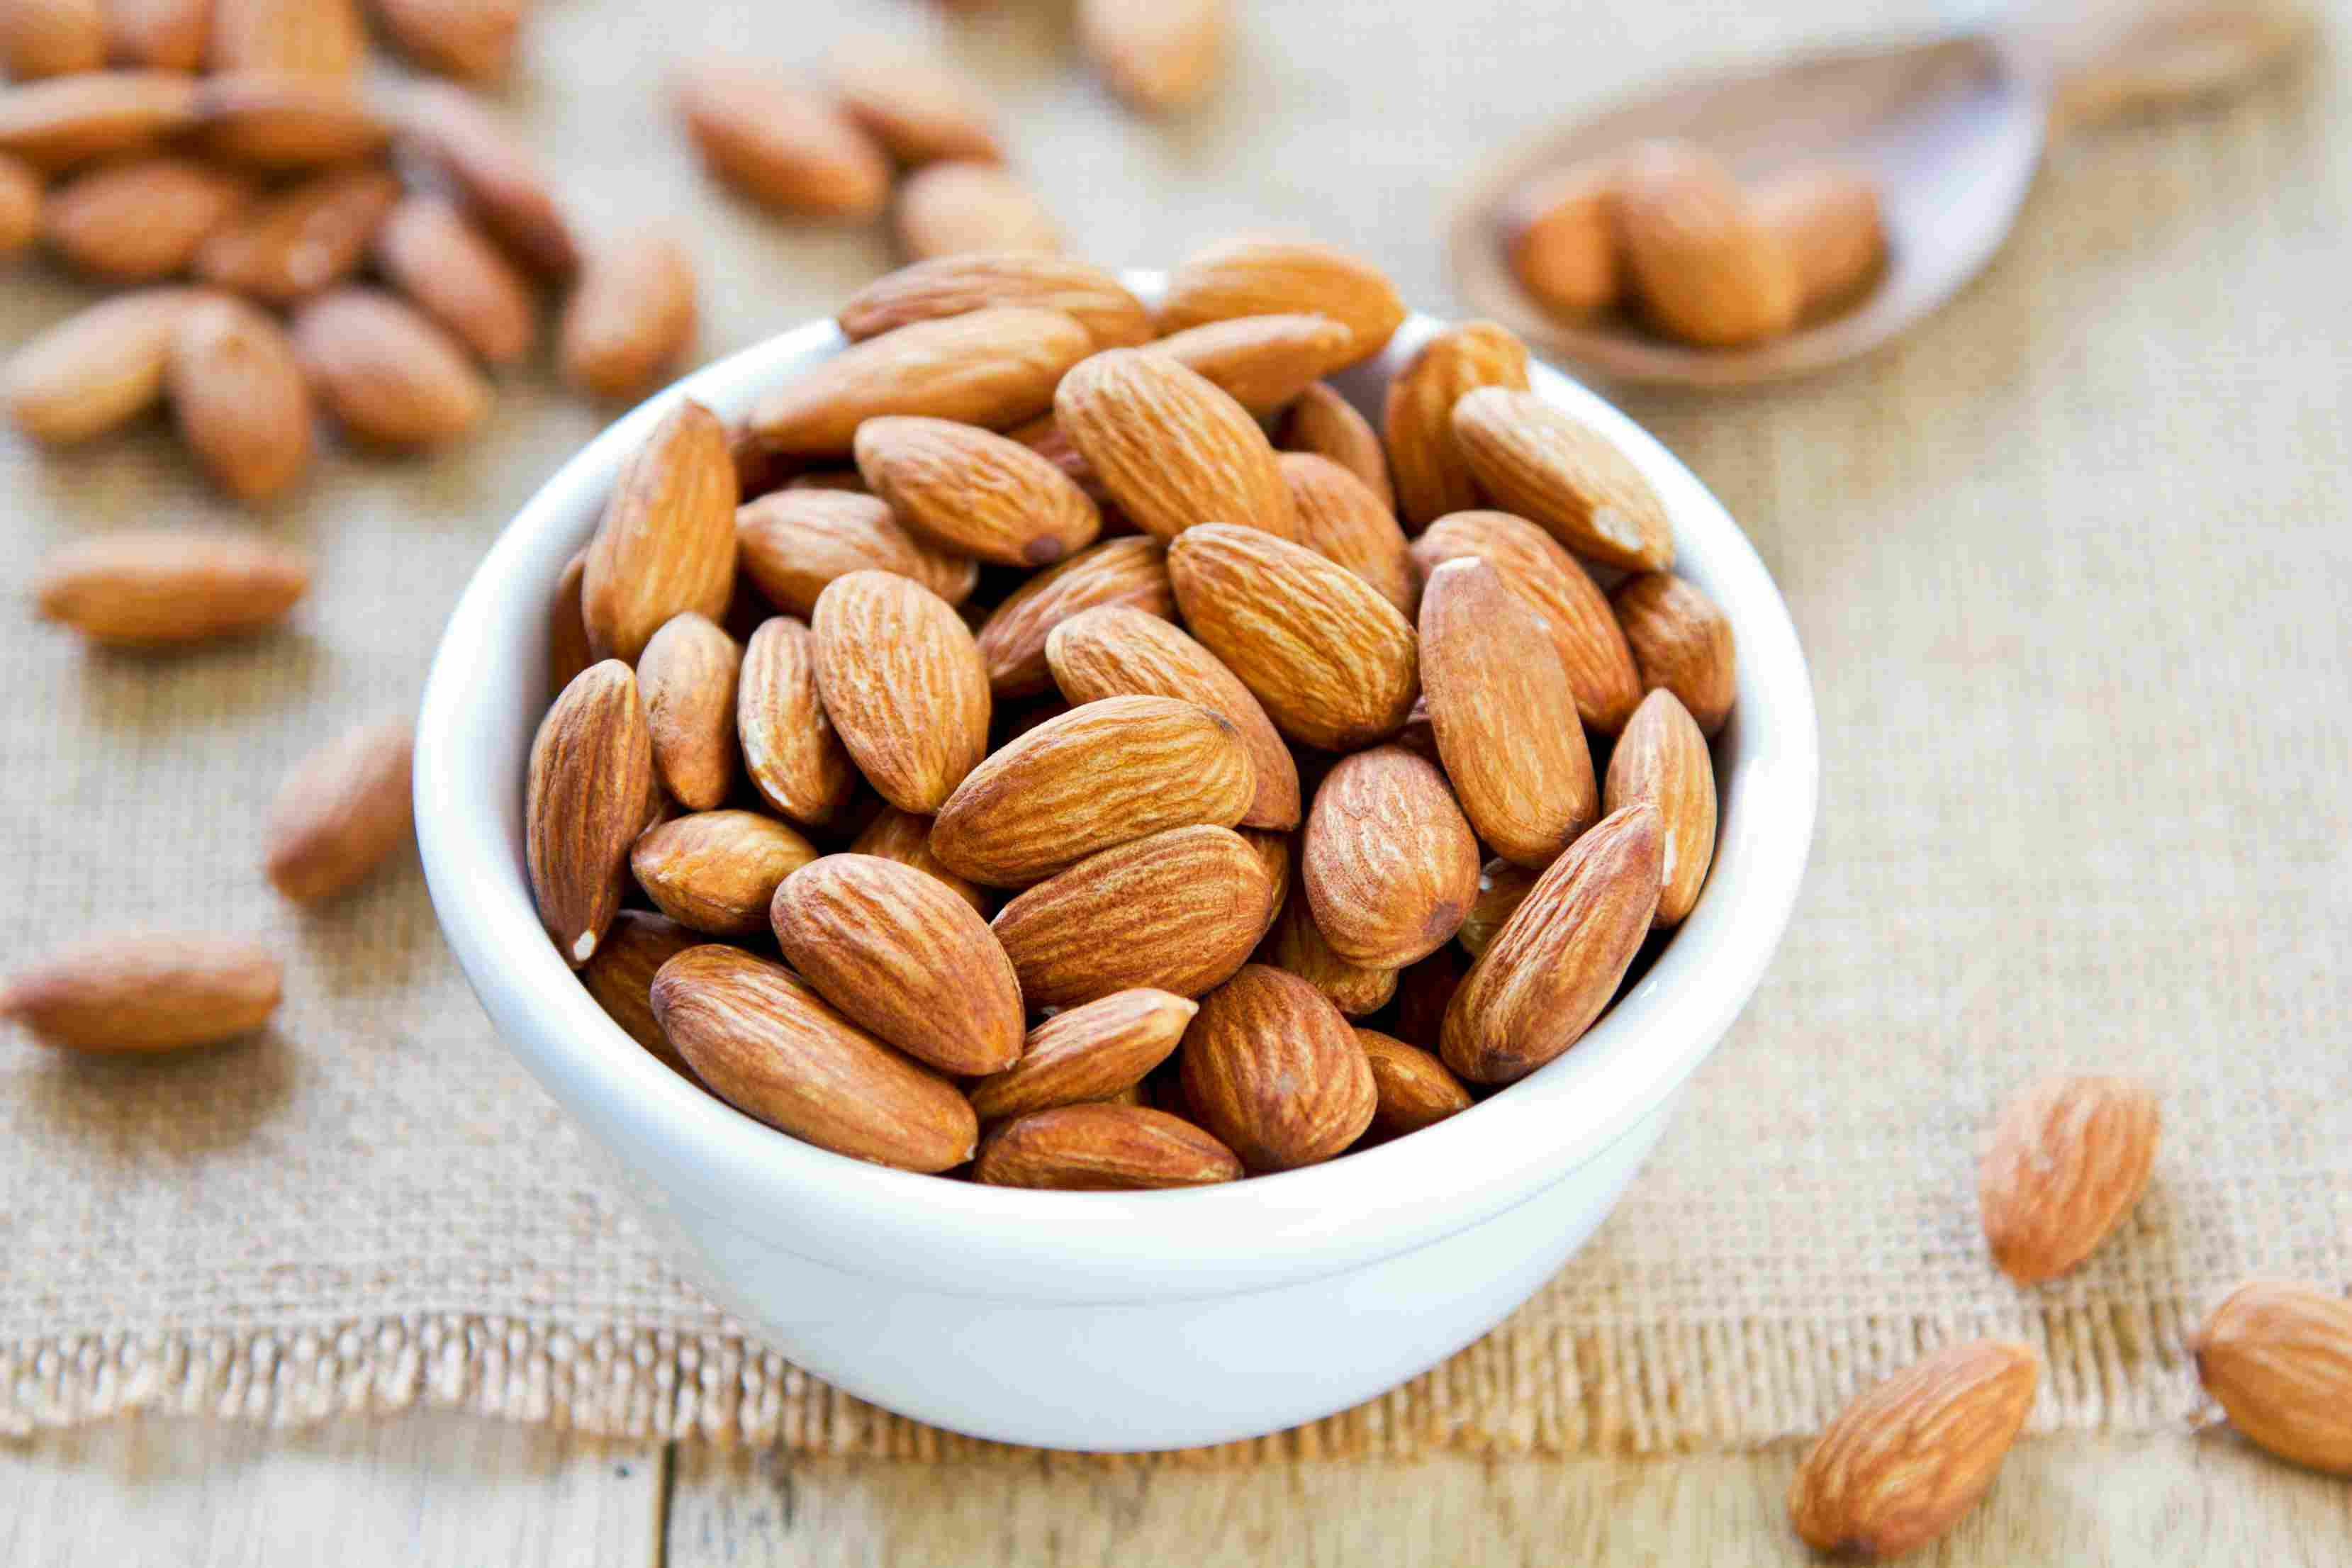 Raw almonds in a bowl